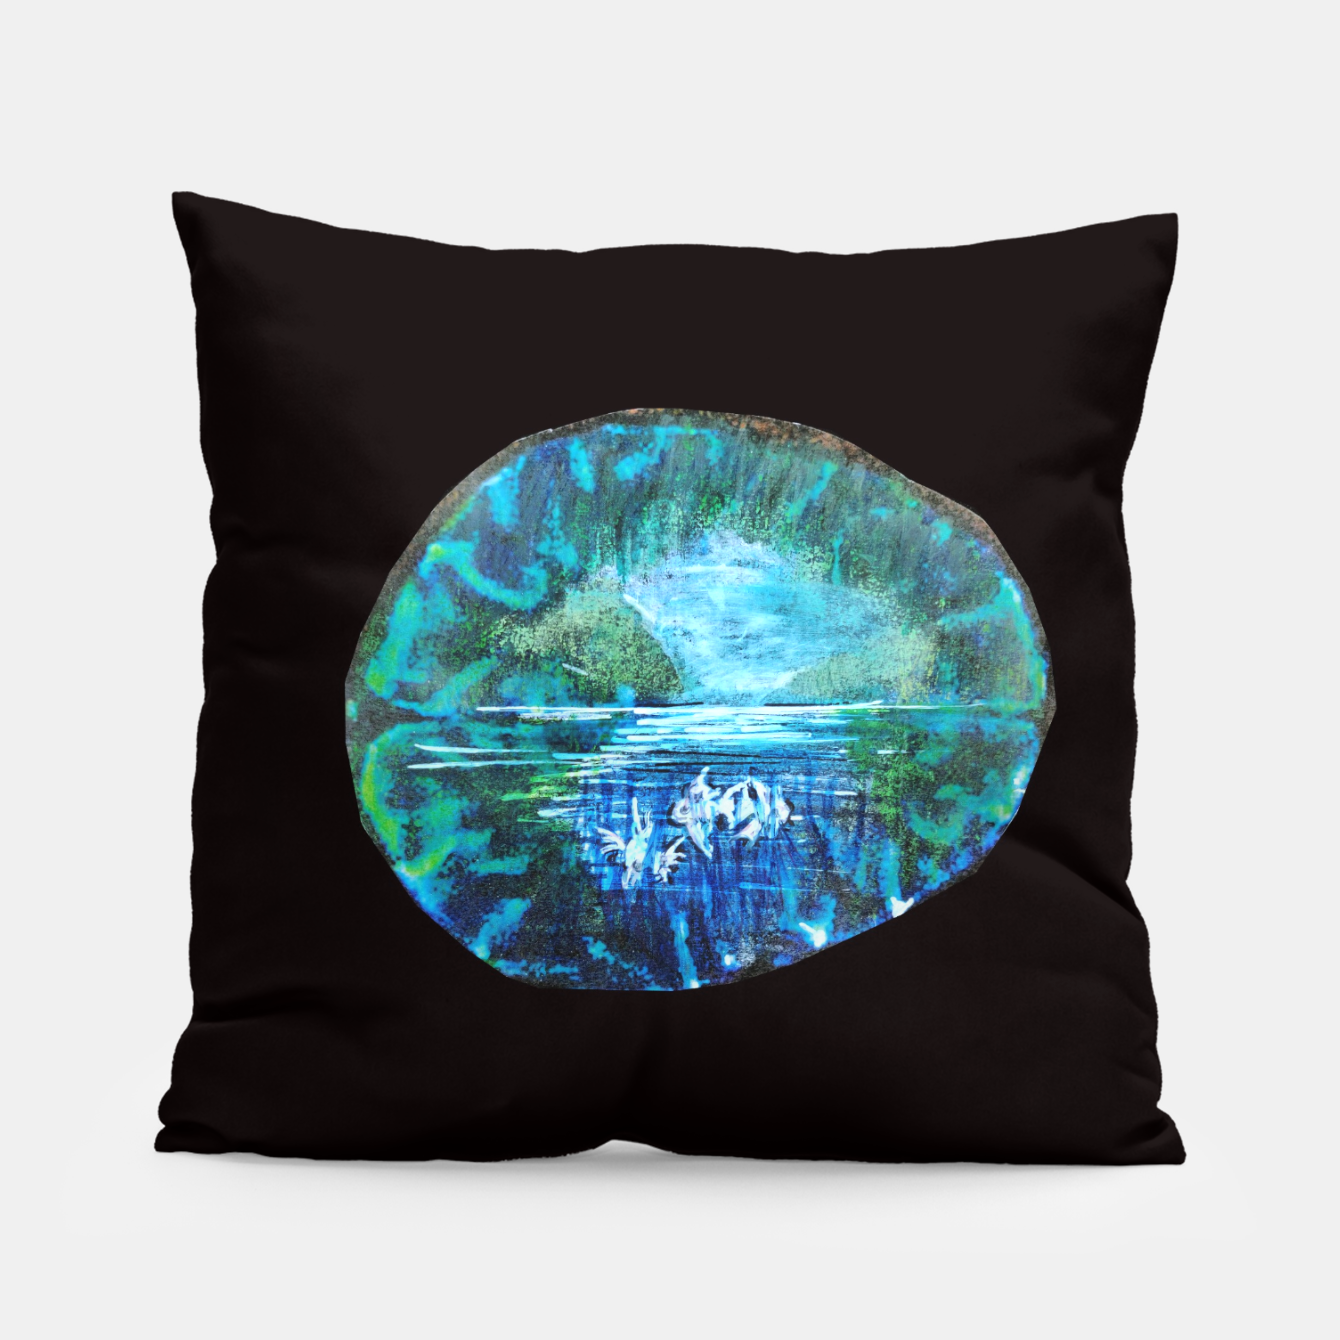 Image of lost and found world brain art for paratissima 19 Yulia A Korneva mri immage Pillow - Live Heroes